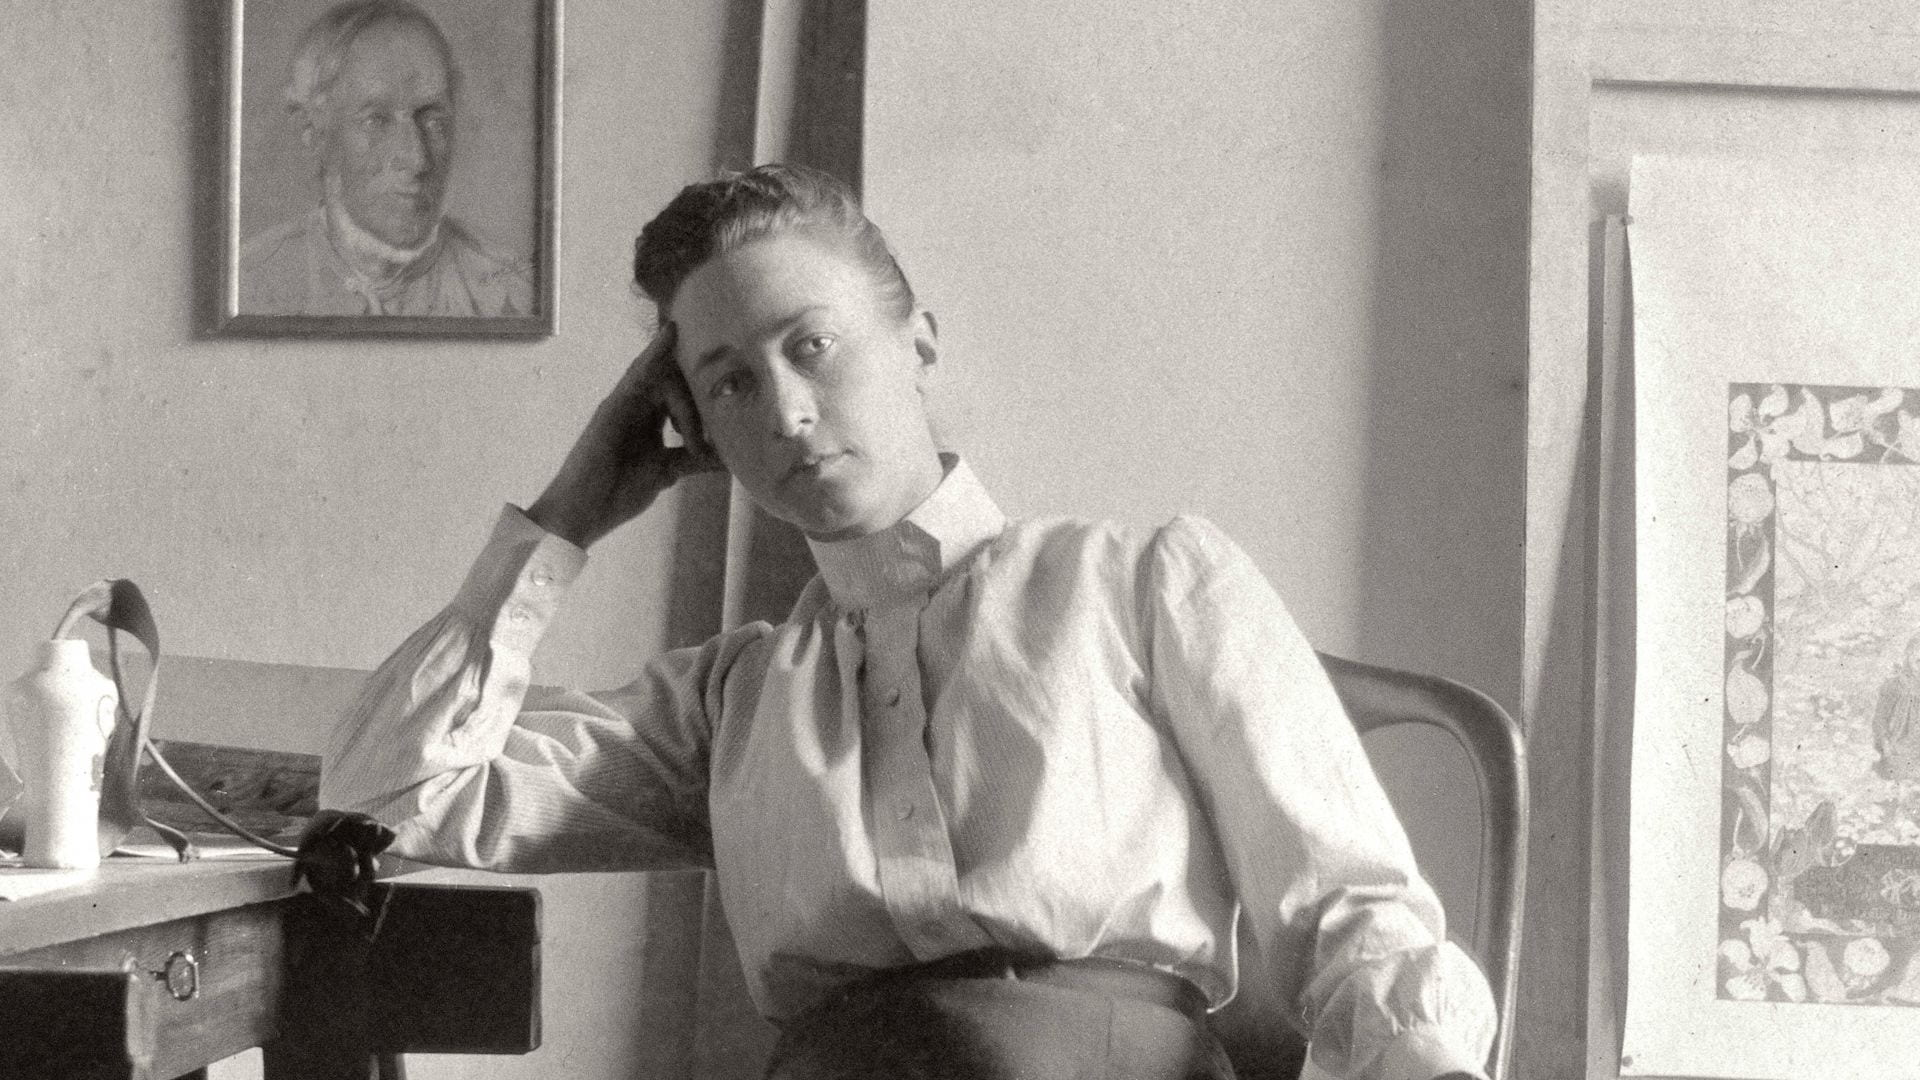 Hilma af Klint at her studio in Stockholm, c.1895